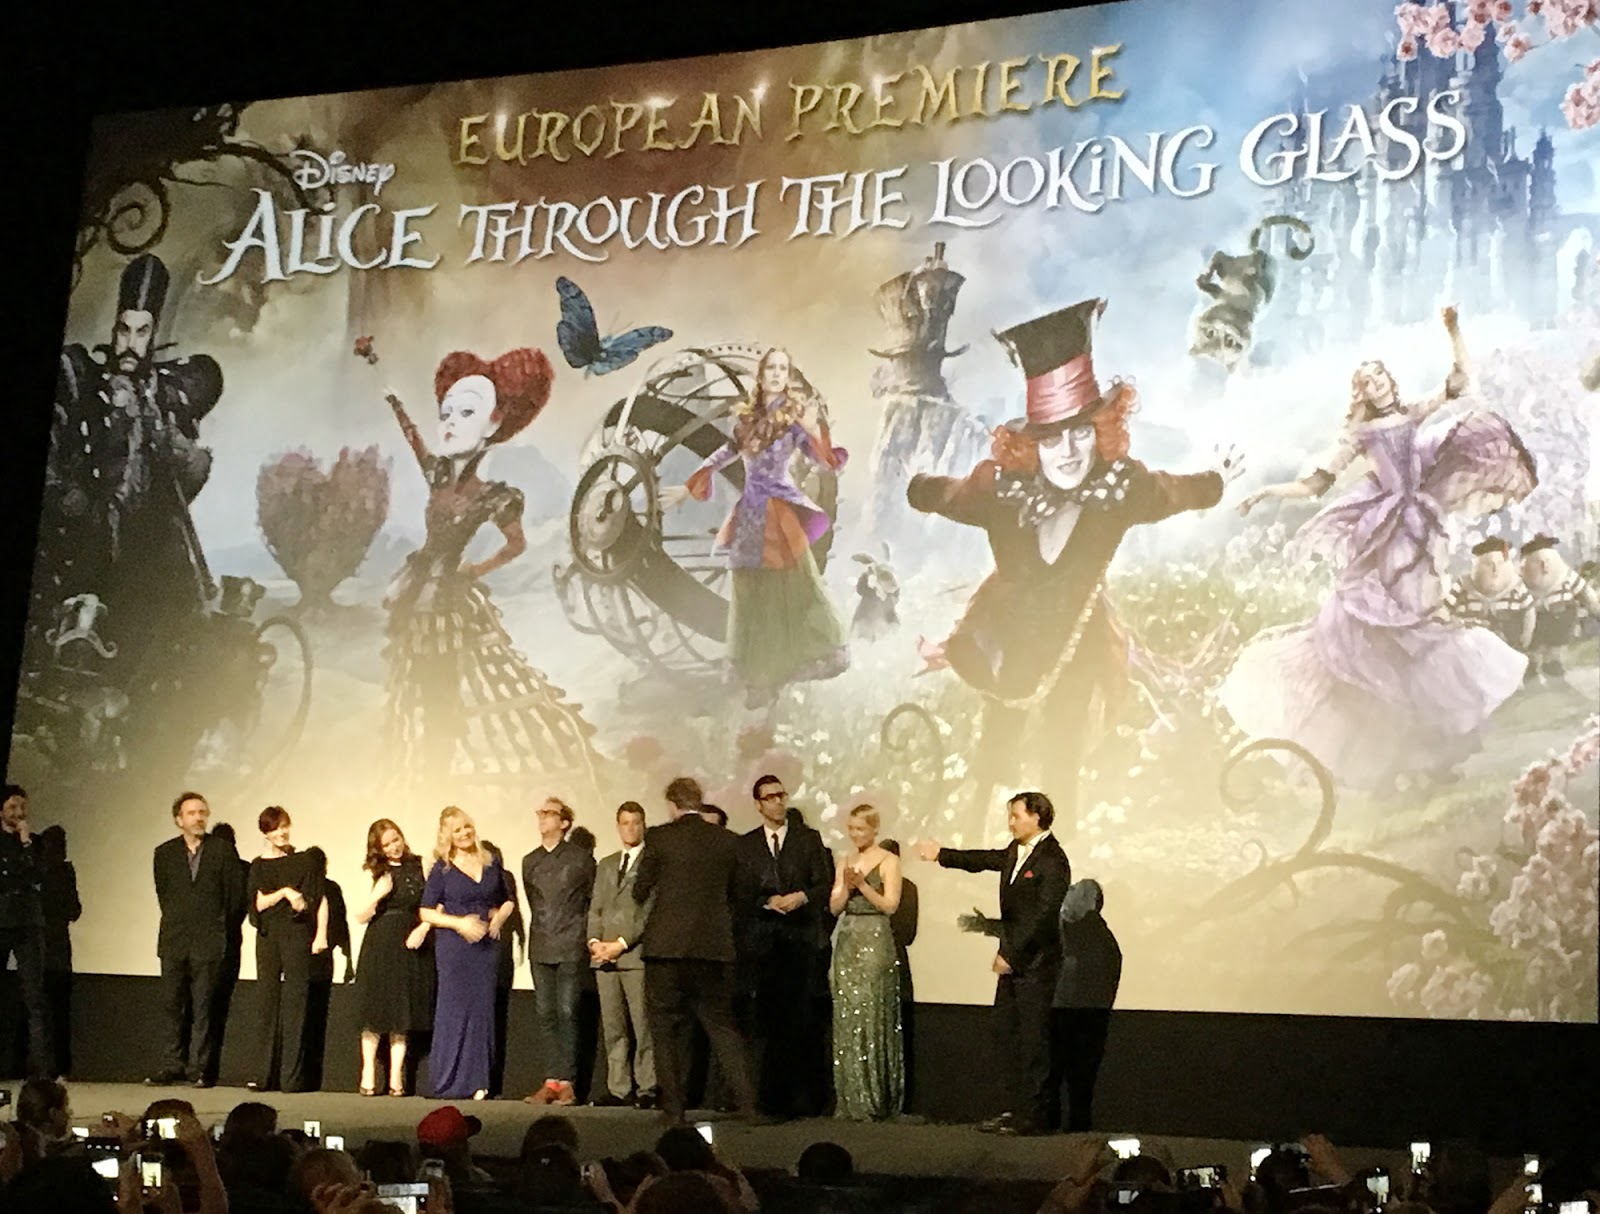 Alice Through the Looking glass european premiere in Leicester Square cast on stage